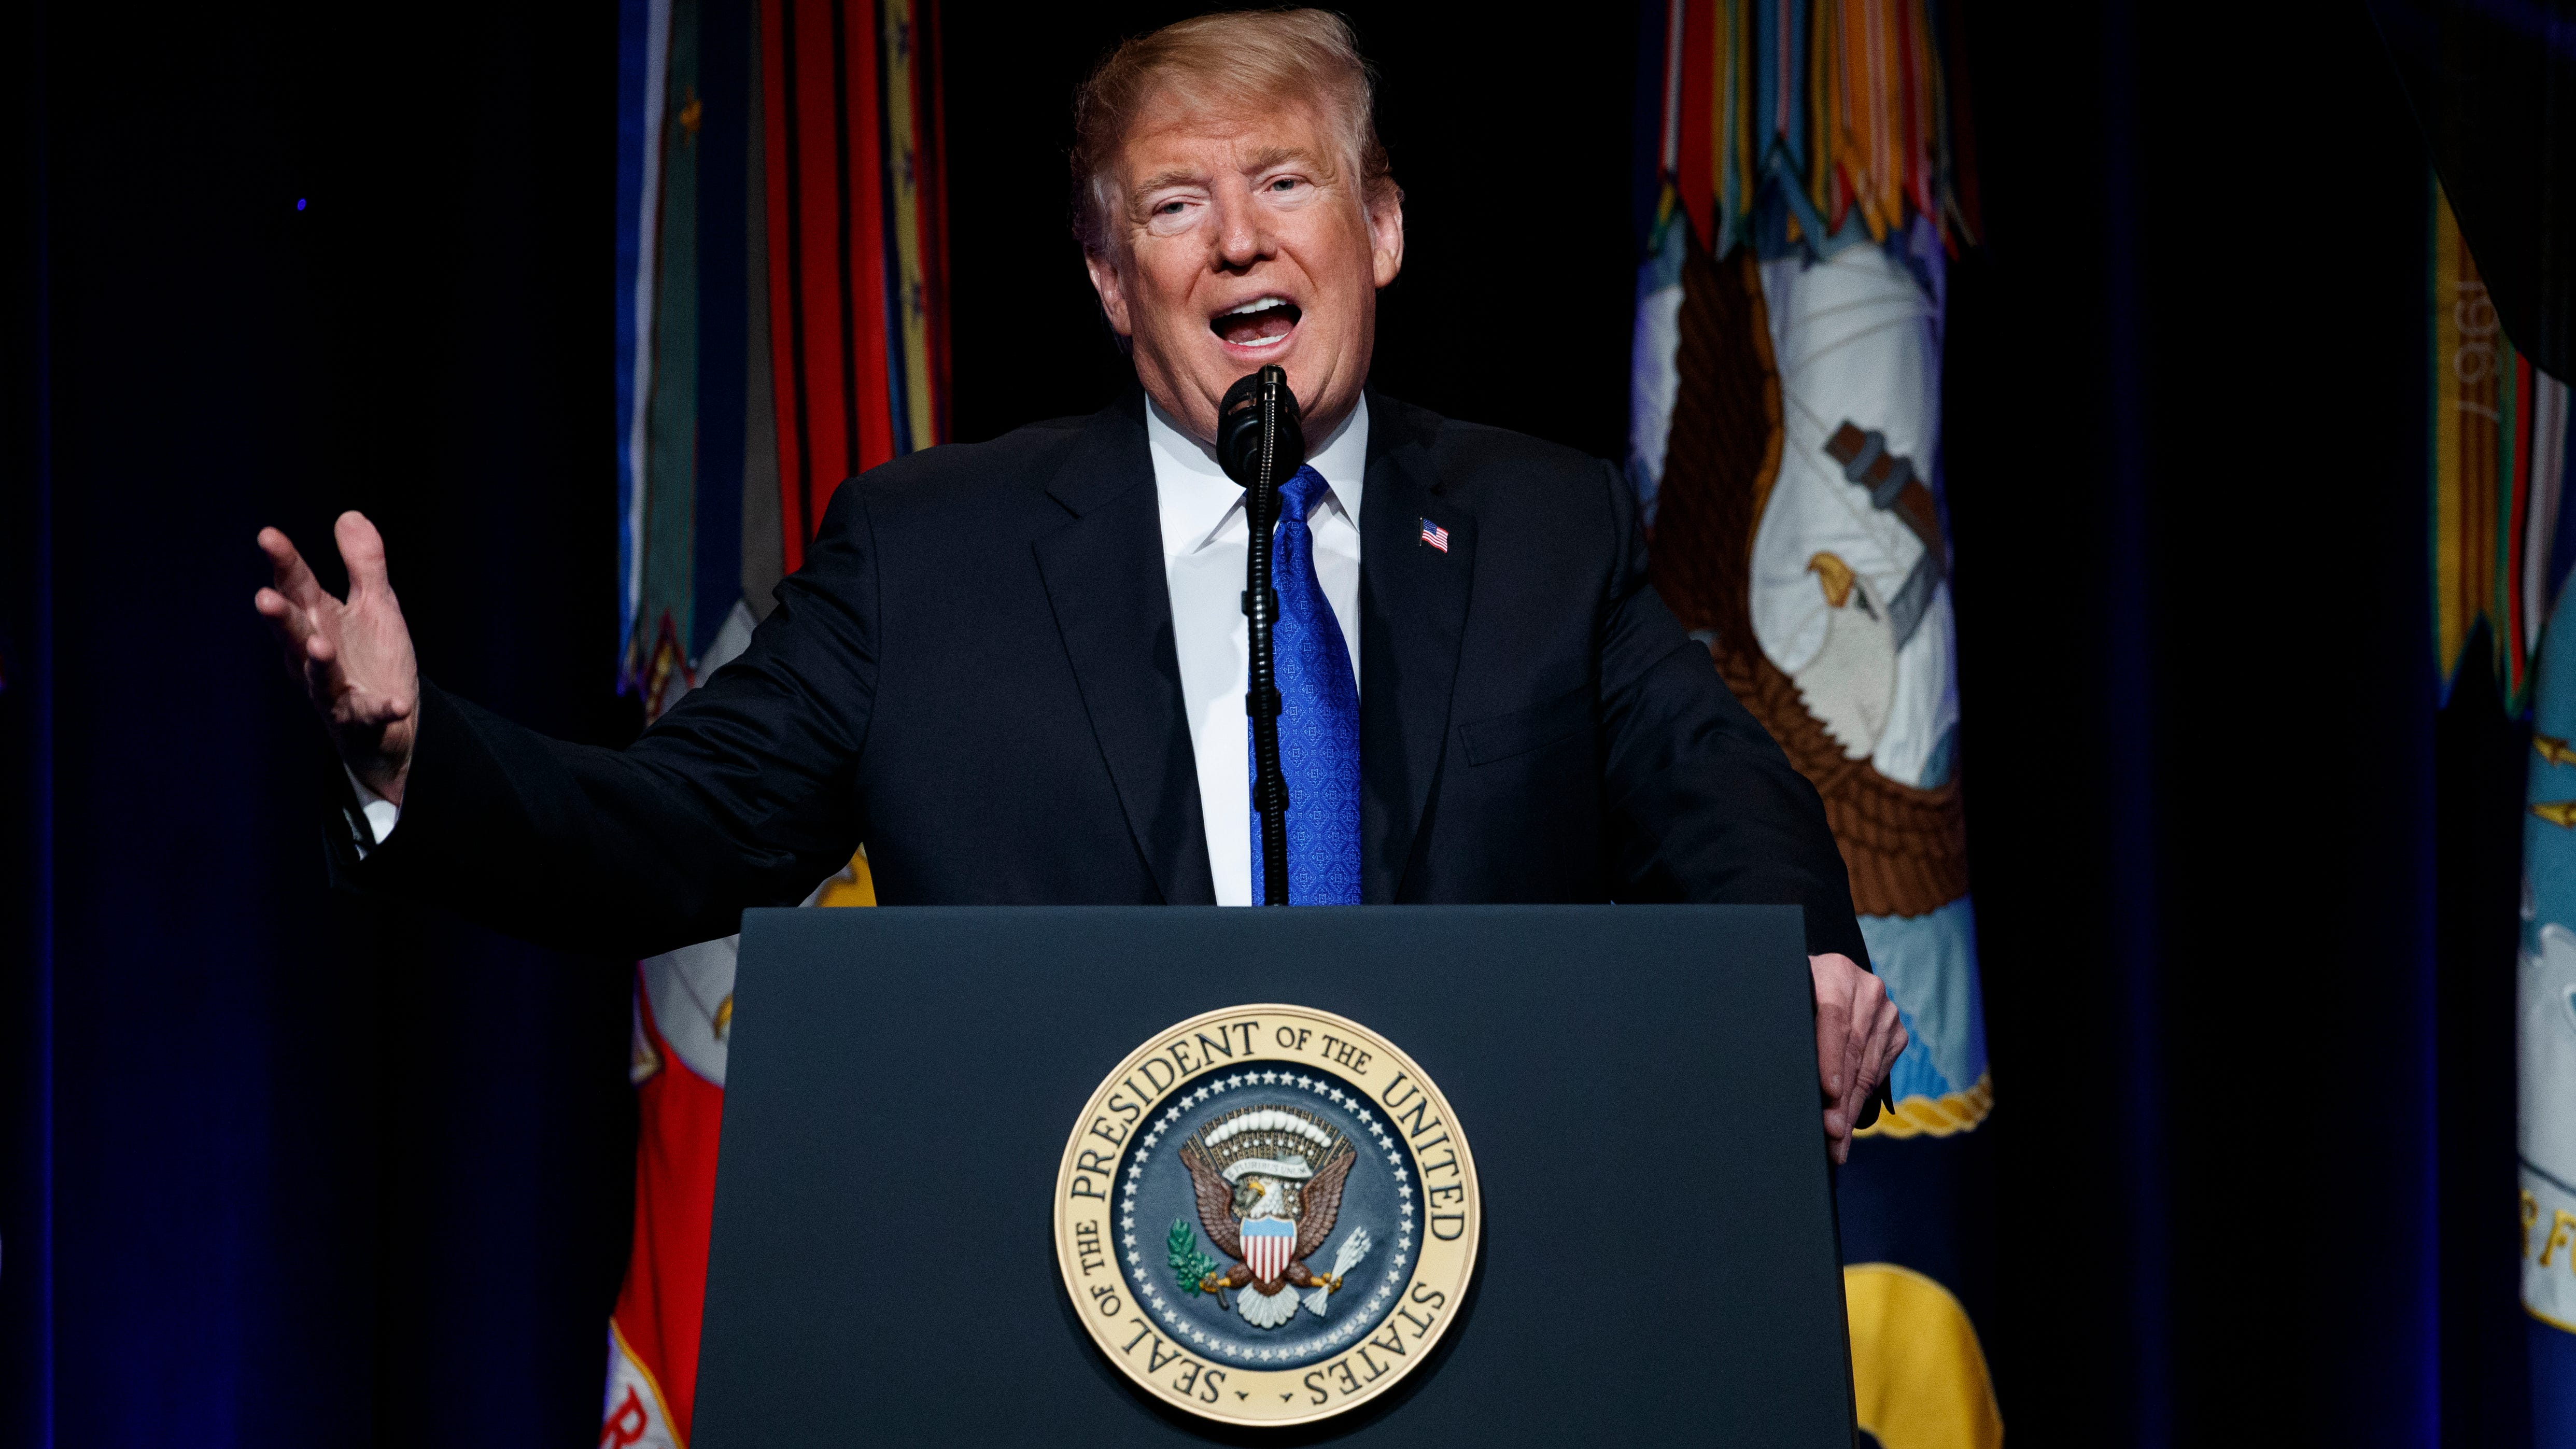 President Donald Trump speaks about American missile defense doctrine on Jan. 17 at the Pentagon